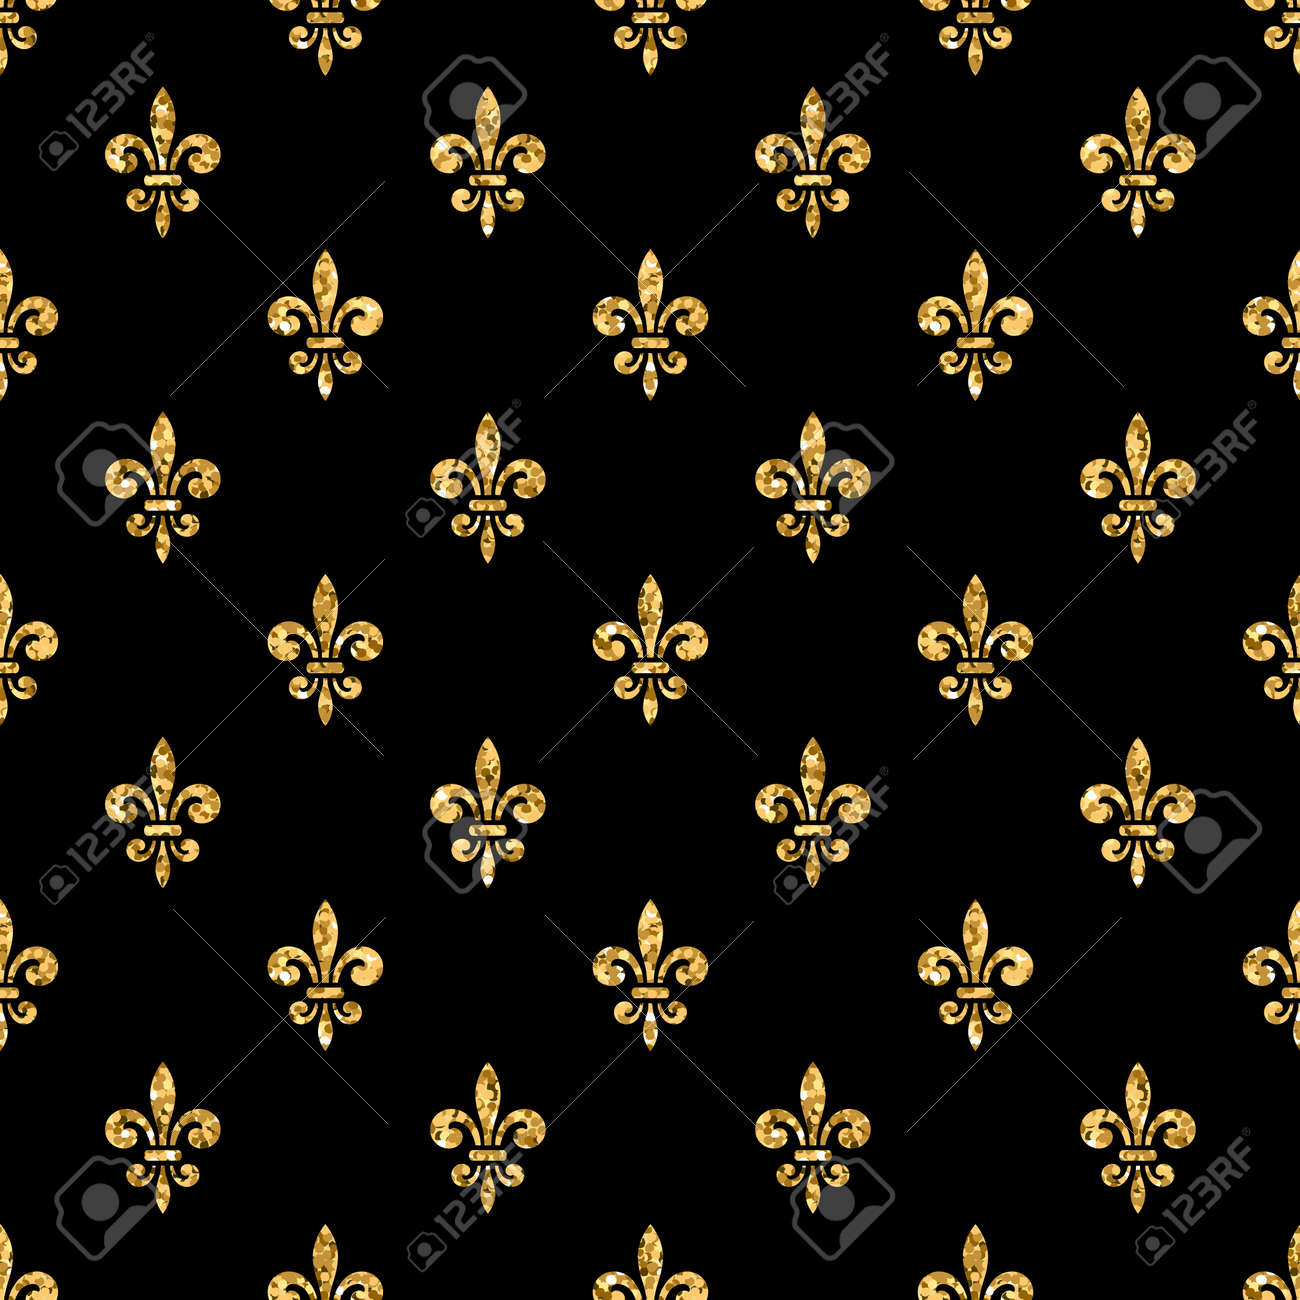 golden fleur de lis seamless pattern gold glitter and black